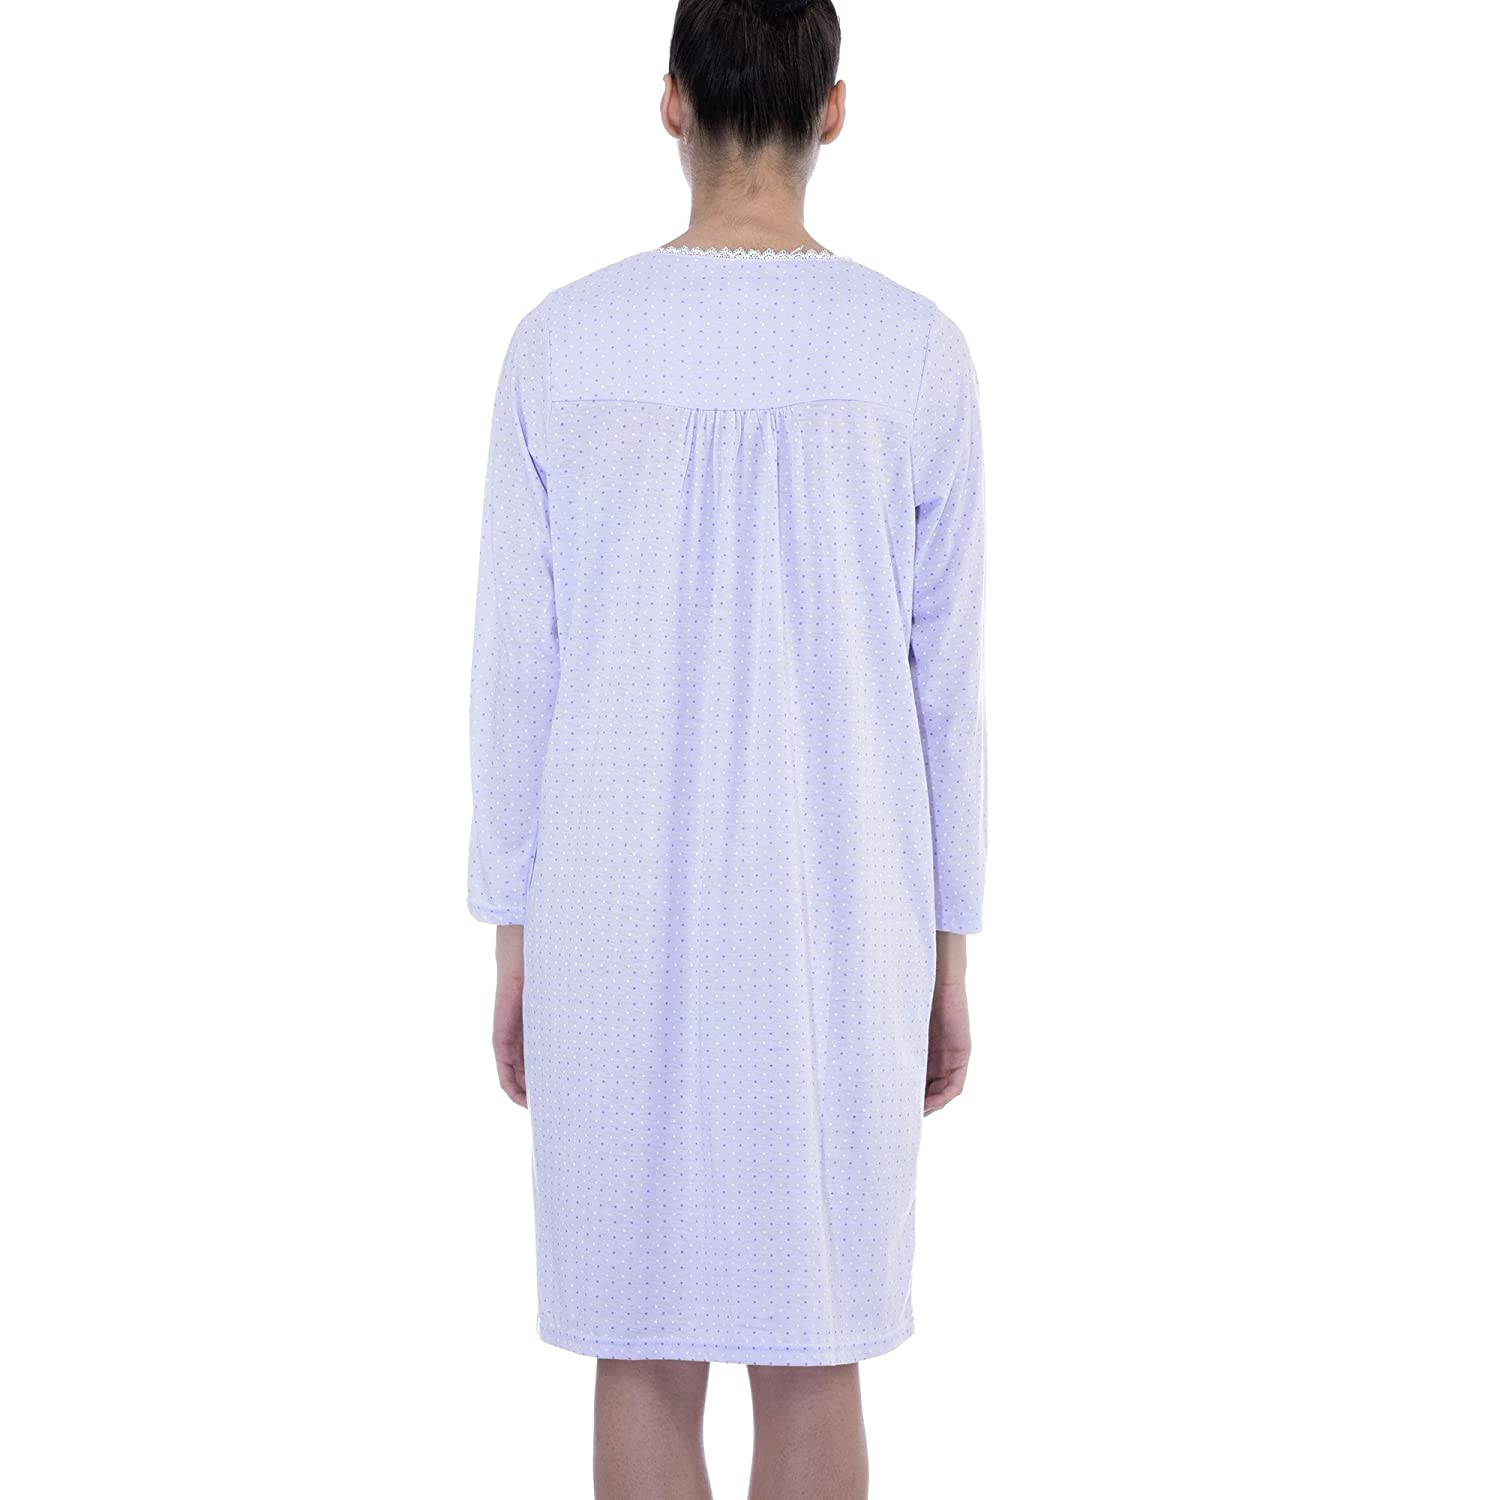 2776d29d81 Ezi Women s Long Sleeve Dainty Comfy Cotton Nightgown at Amazon Women s  Clothing store